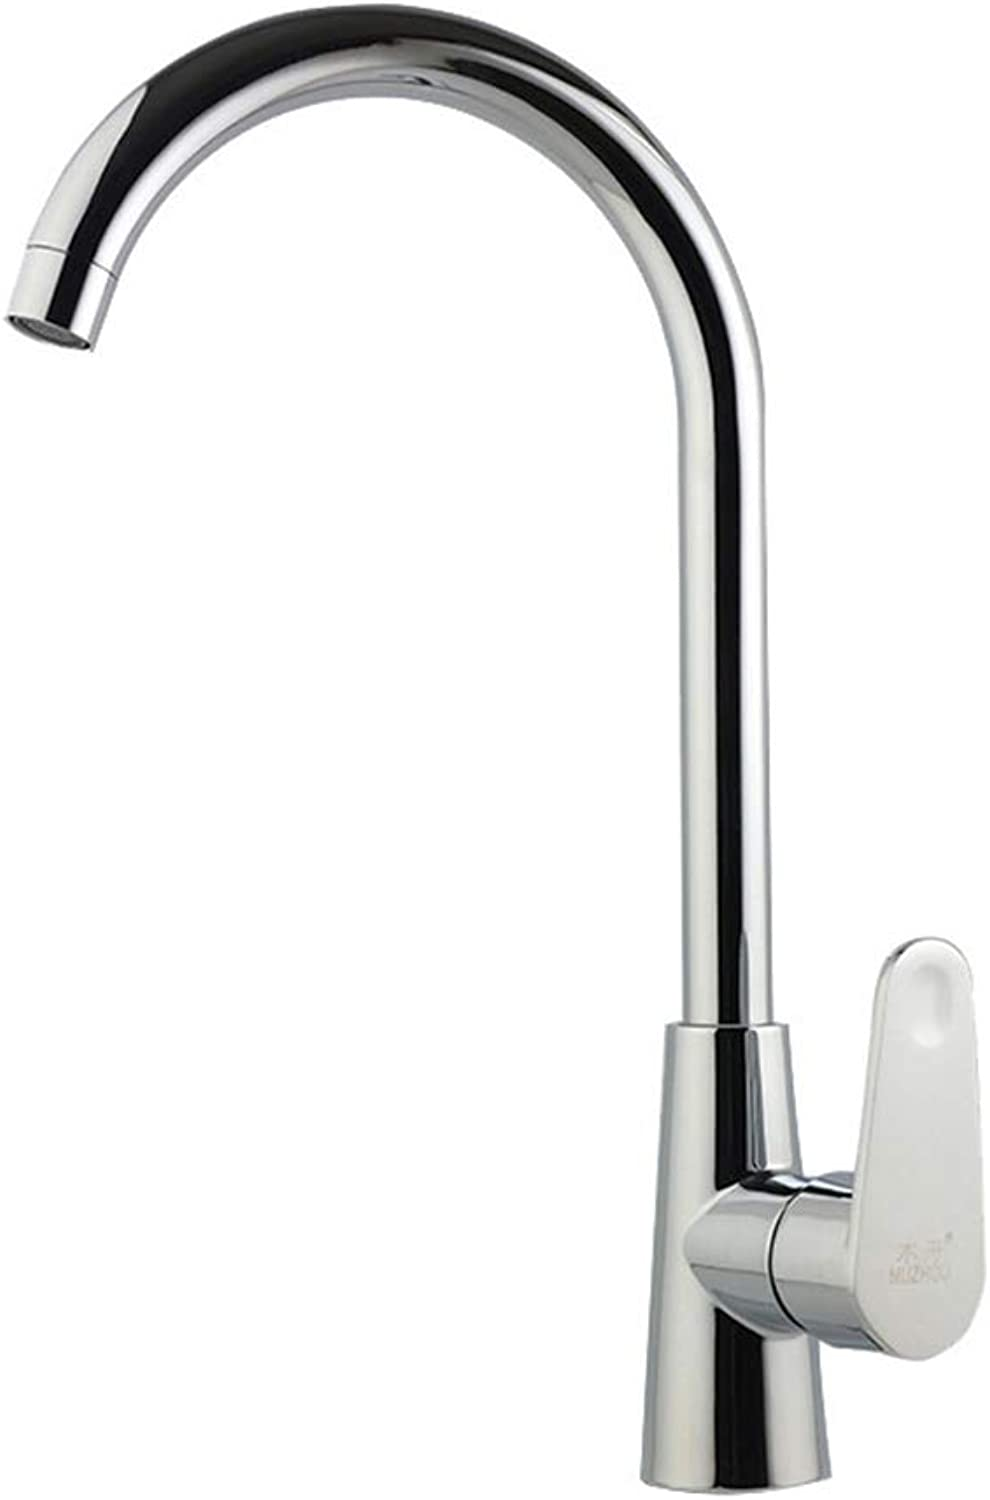 Kitchen Faucet, Concetto Kitchen Tap, Zedra Kitchen Tap Stainless Steel Single Lever Swivel Spout kitchen Mixer Tap, Kitchen Tap